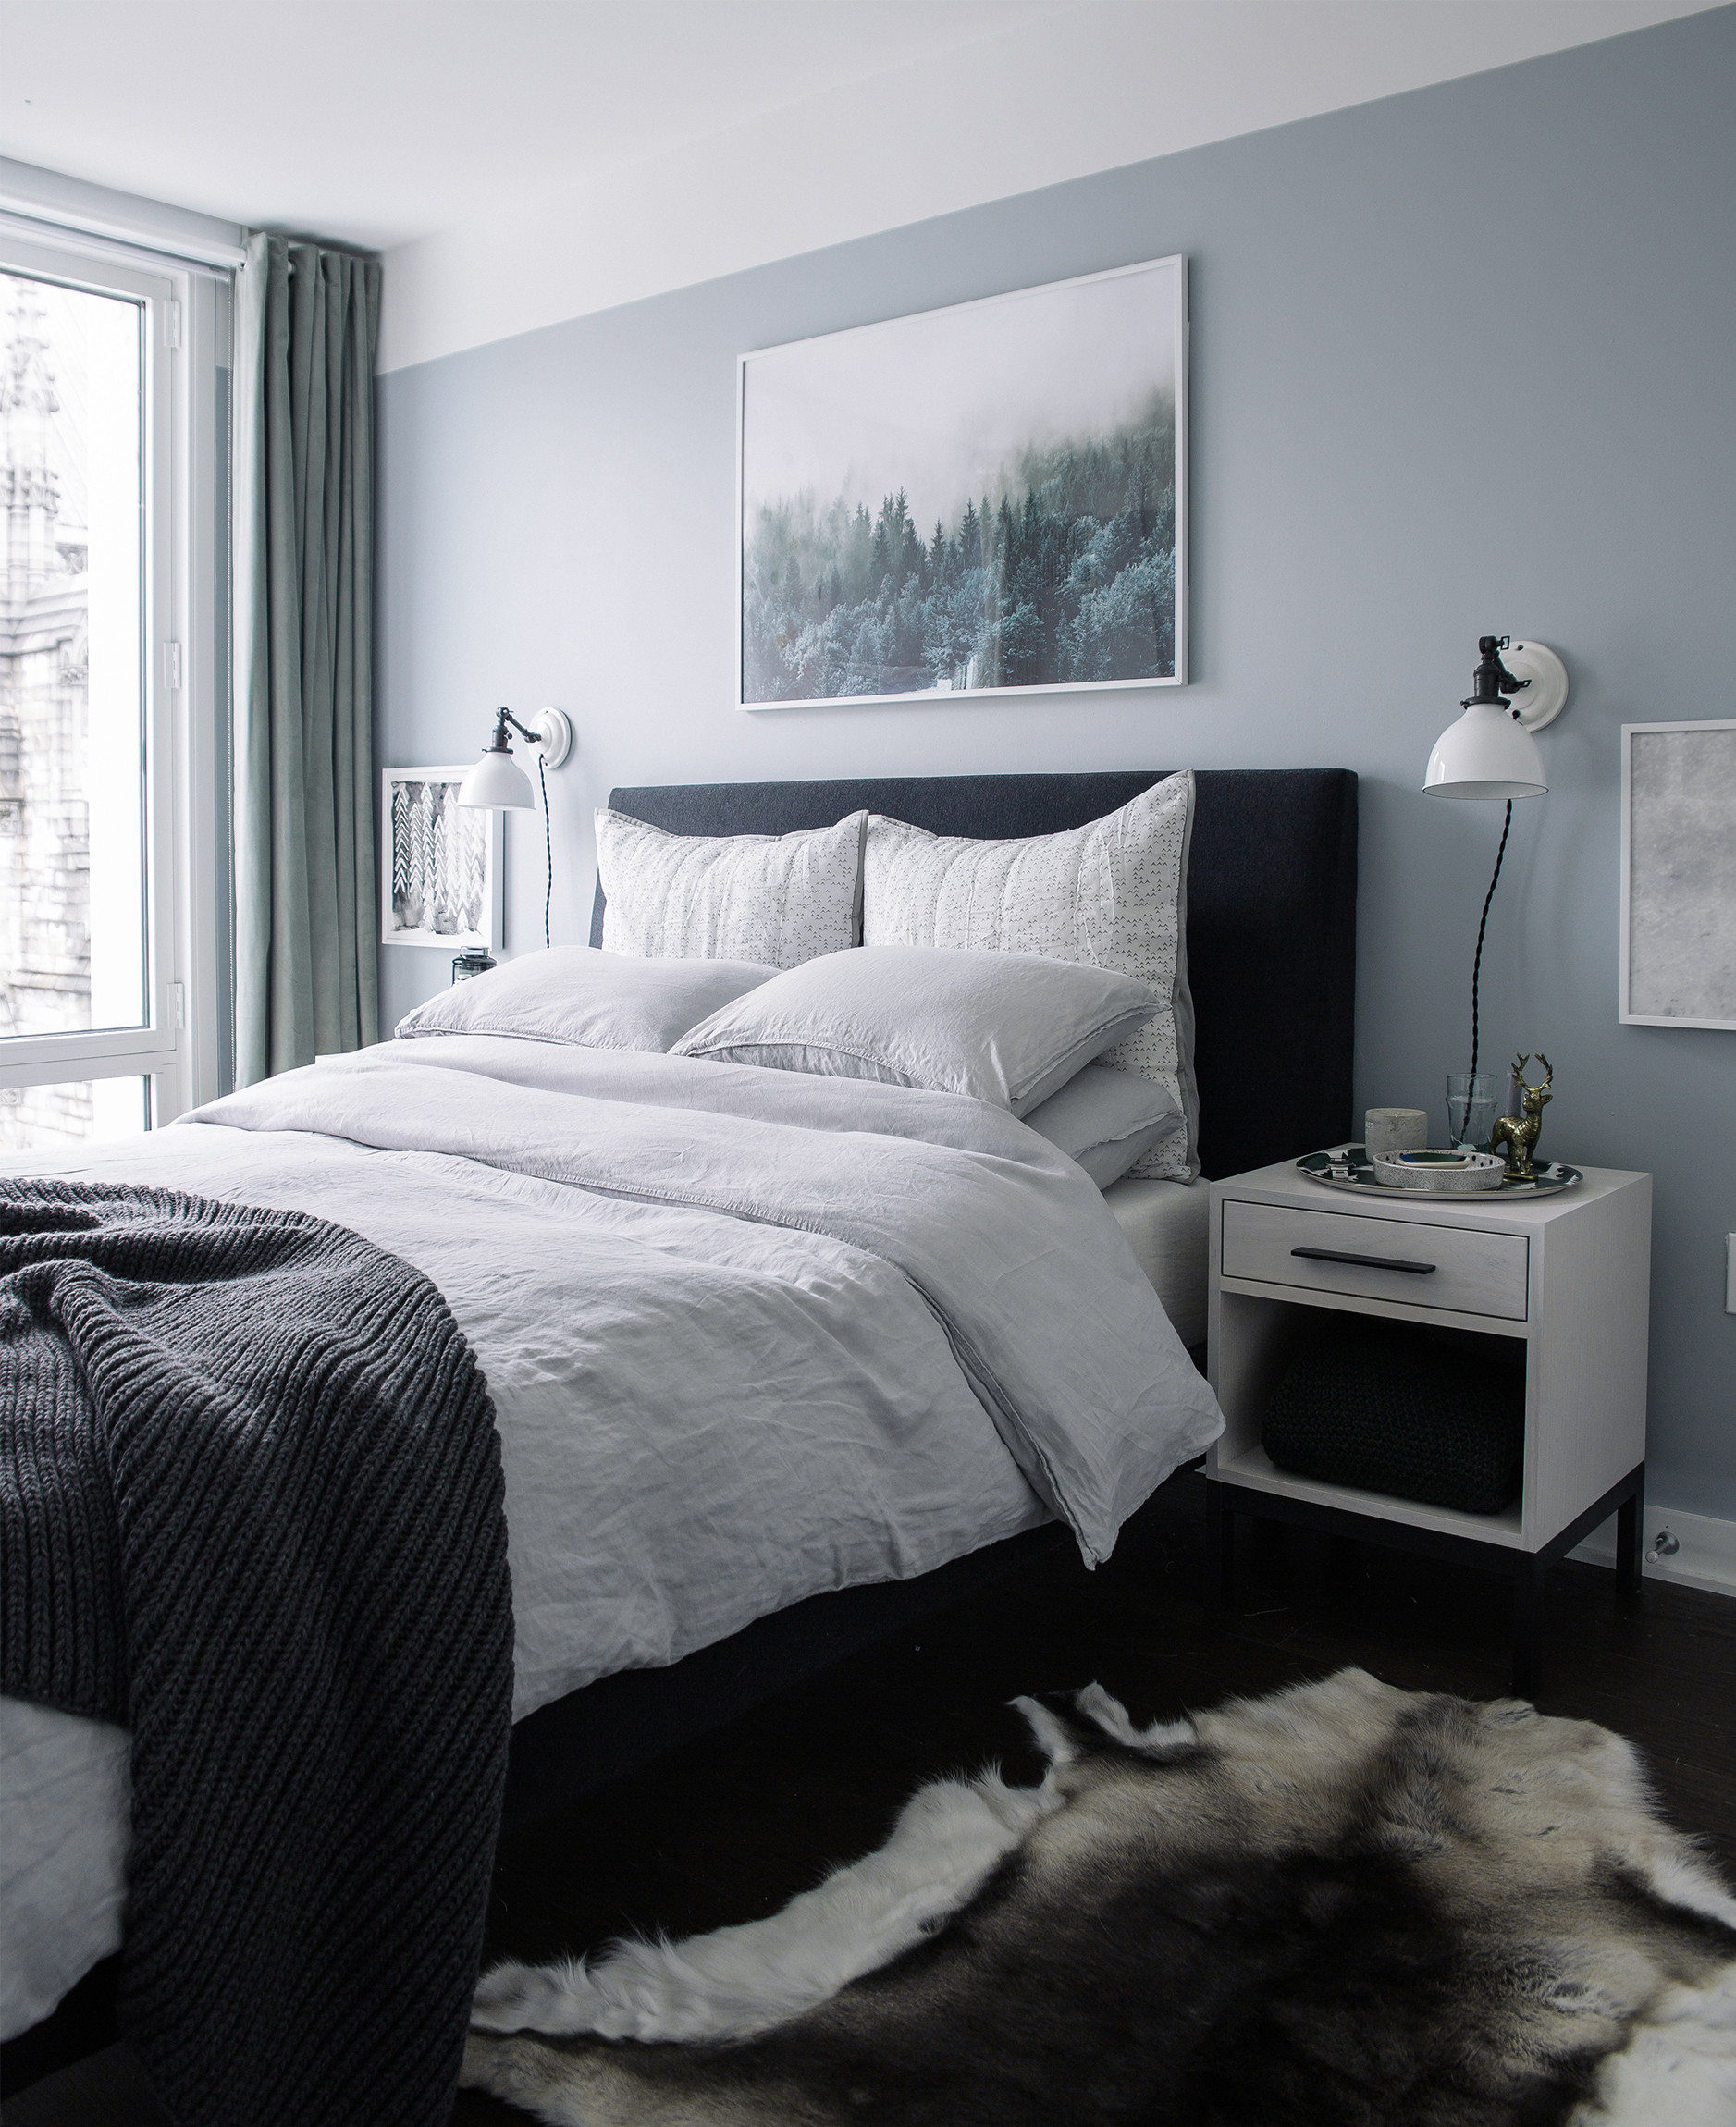 Gray Paint For Bedroom  Bedroom Makeover The Reveal Bright Bazaar by Will Taylor